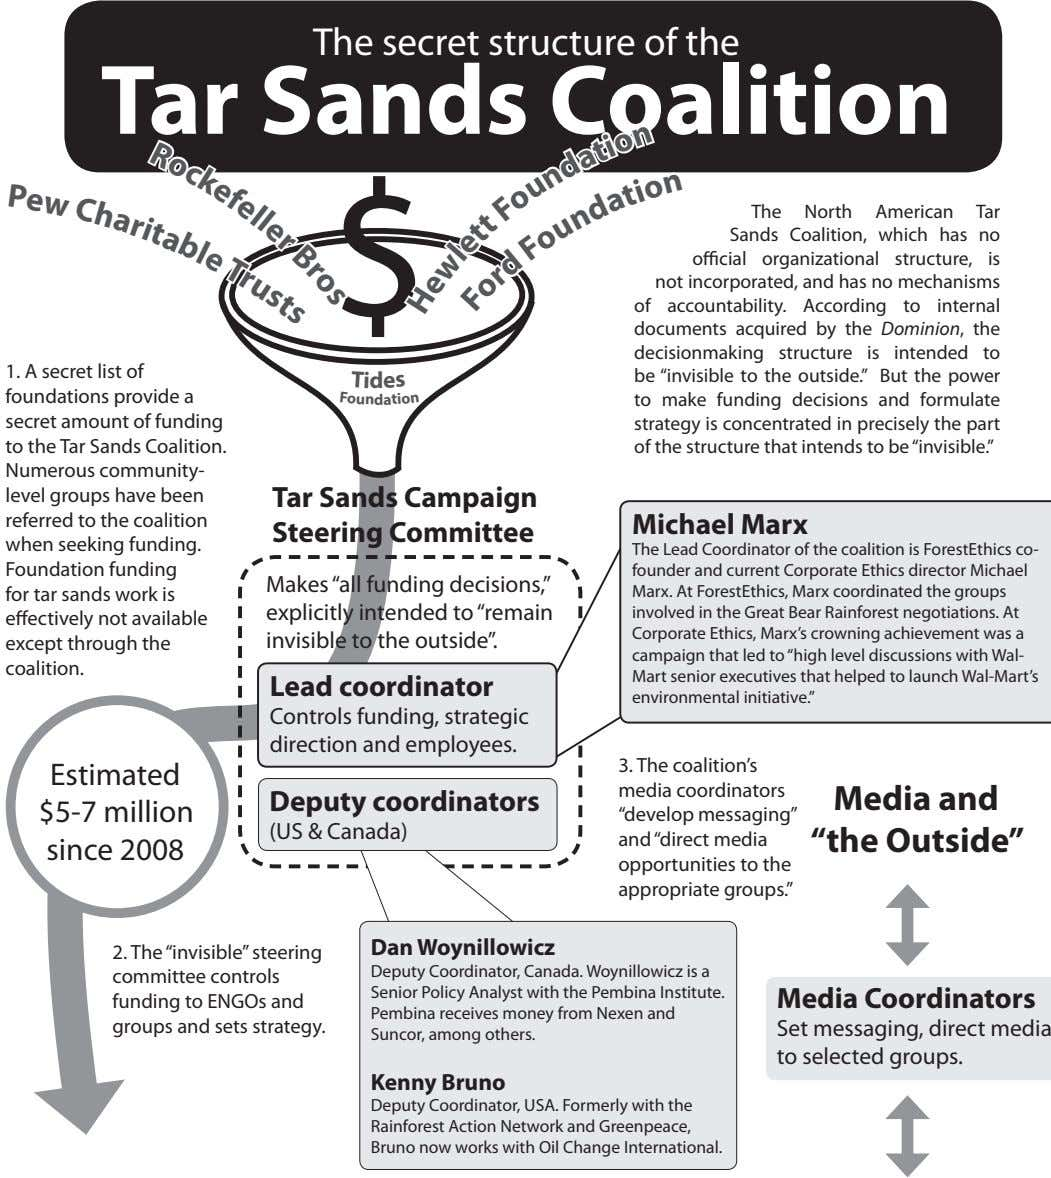 The secret structure of the Tar Sands Coalition R e P o C w c a